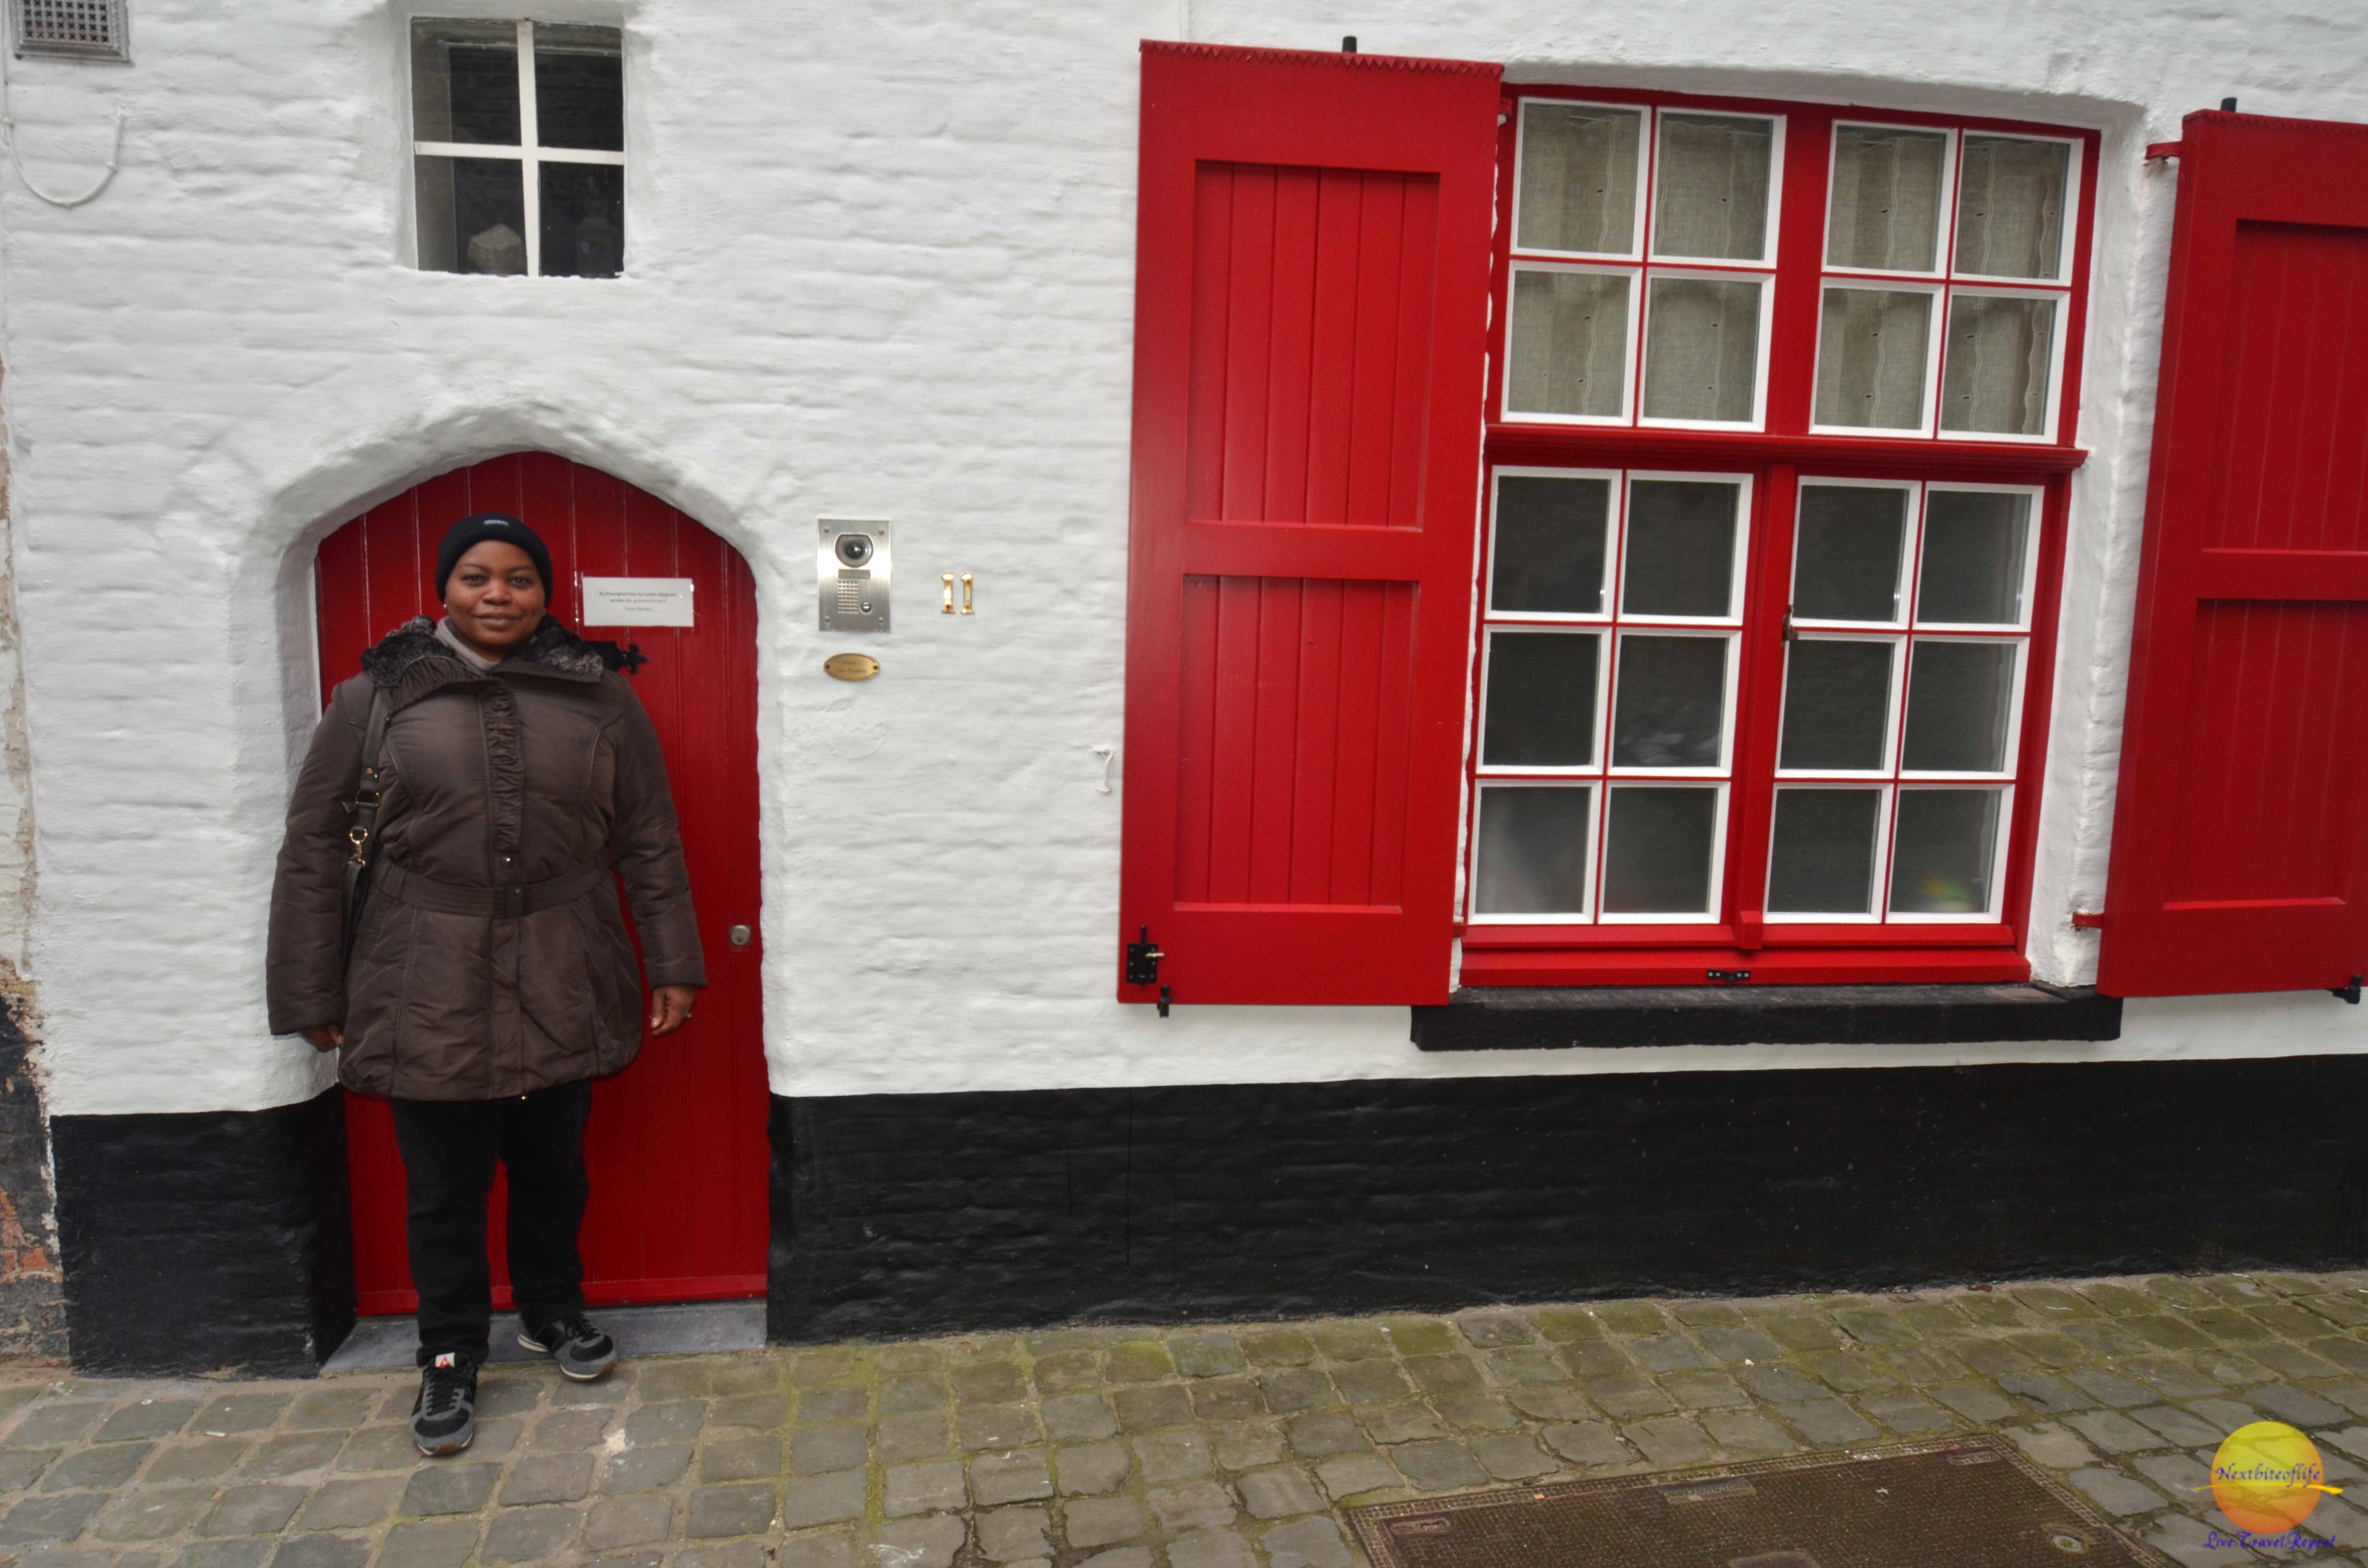 In Bruges – Just like in the movie!